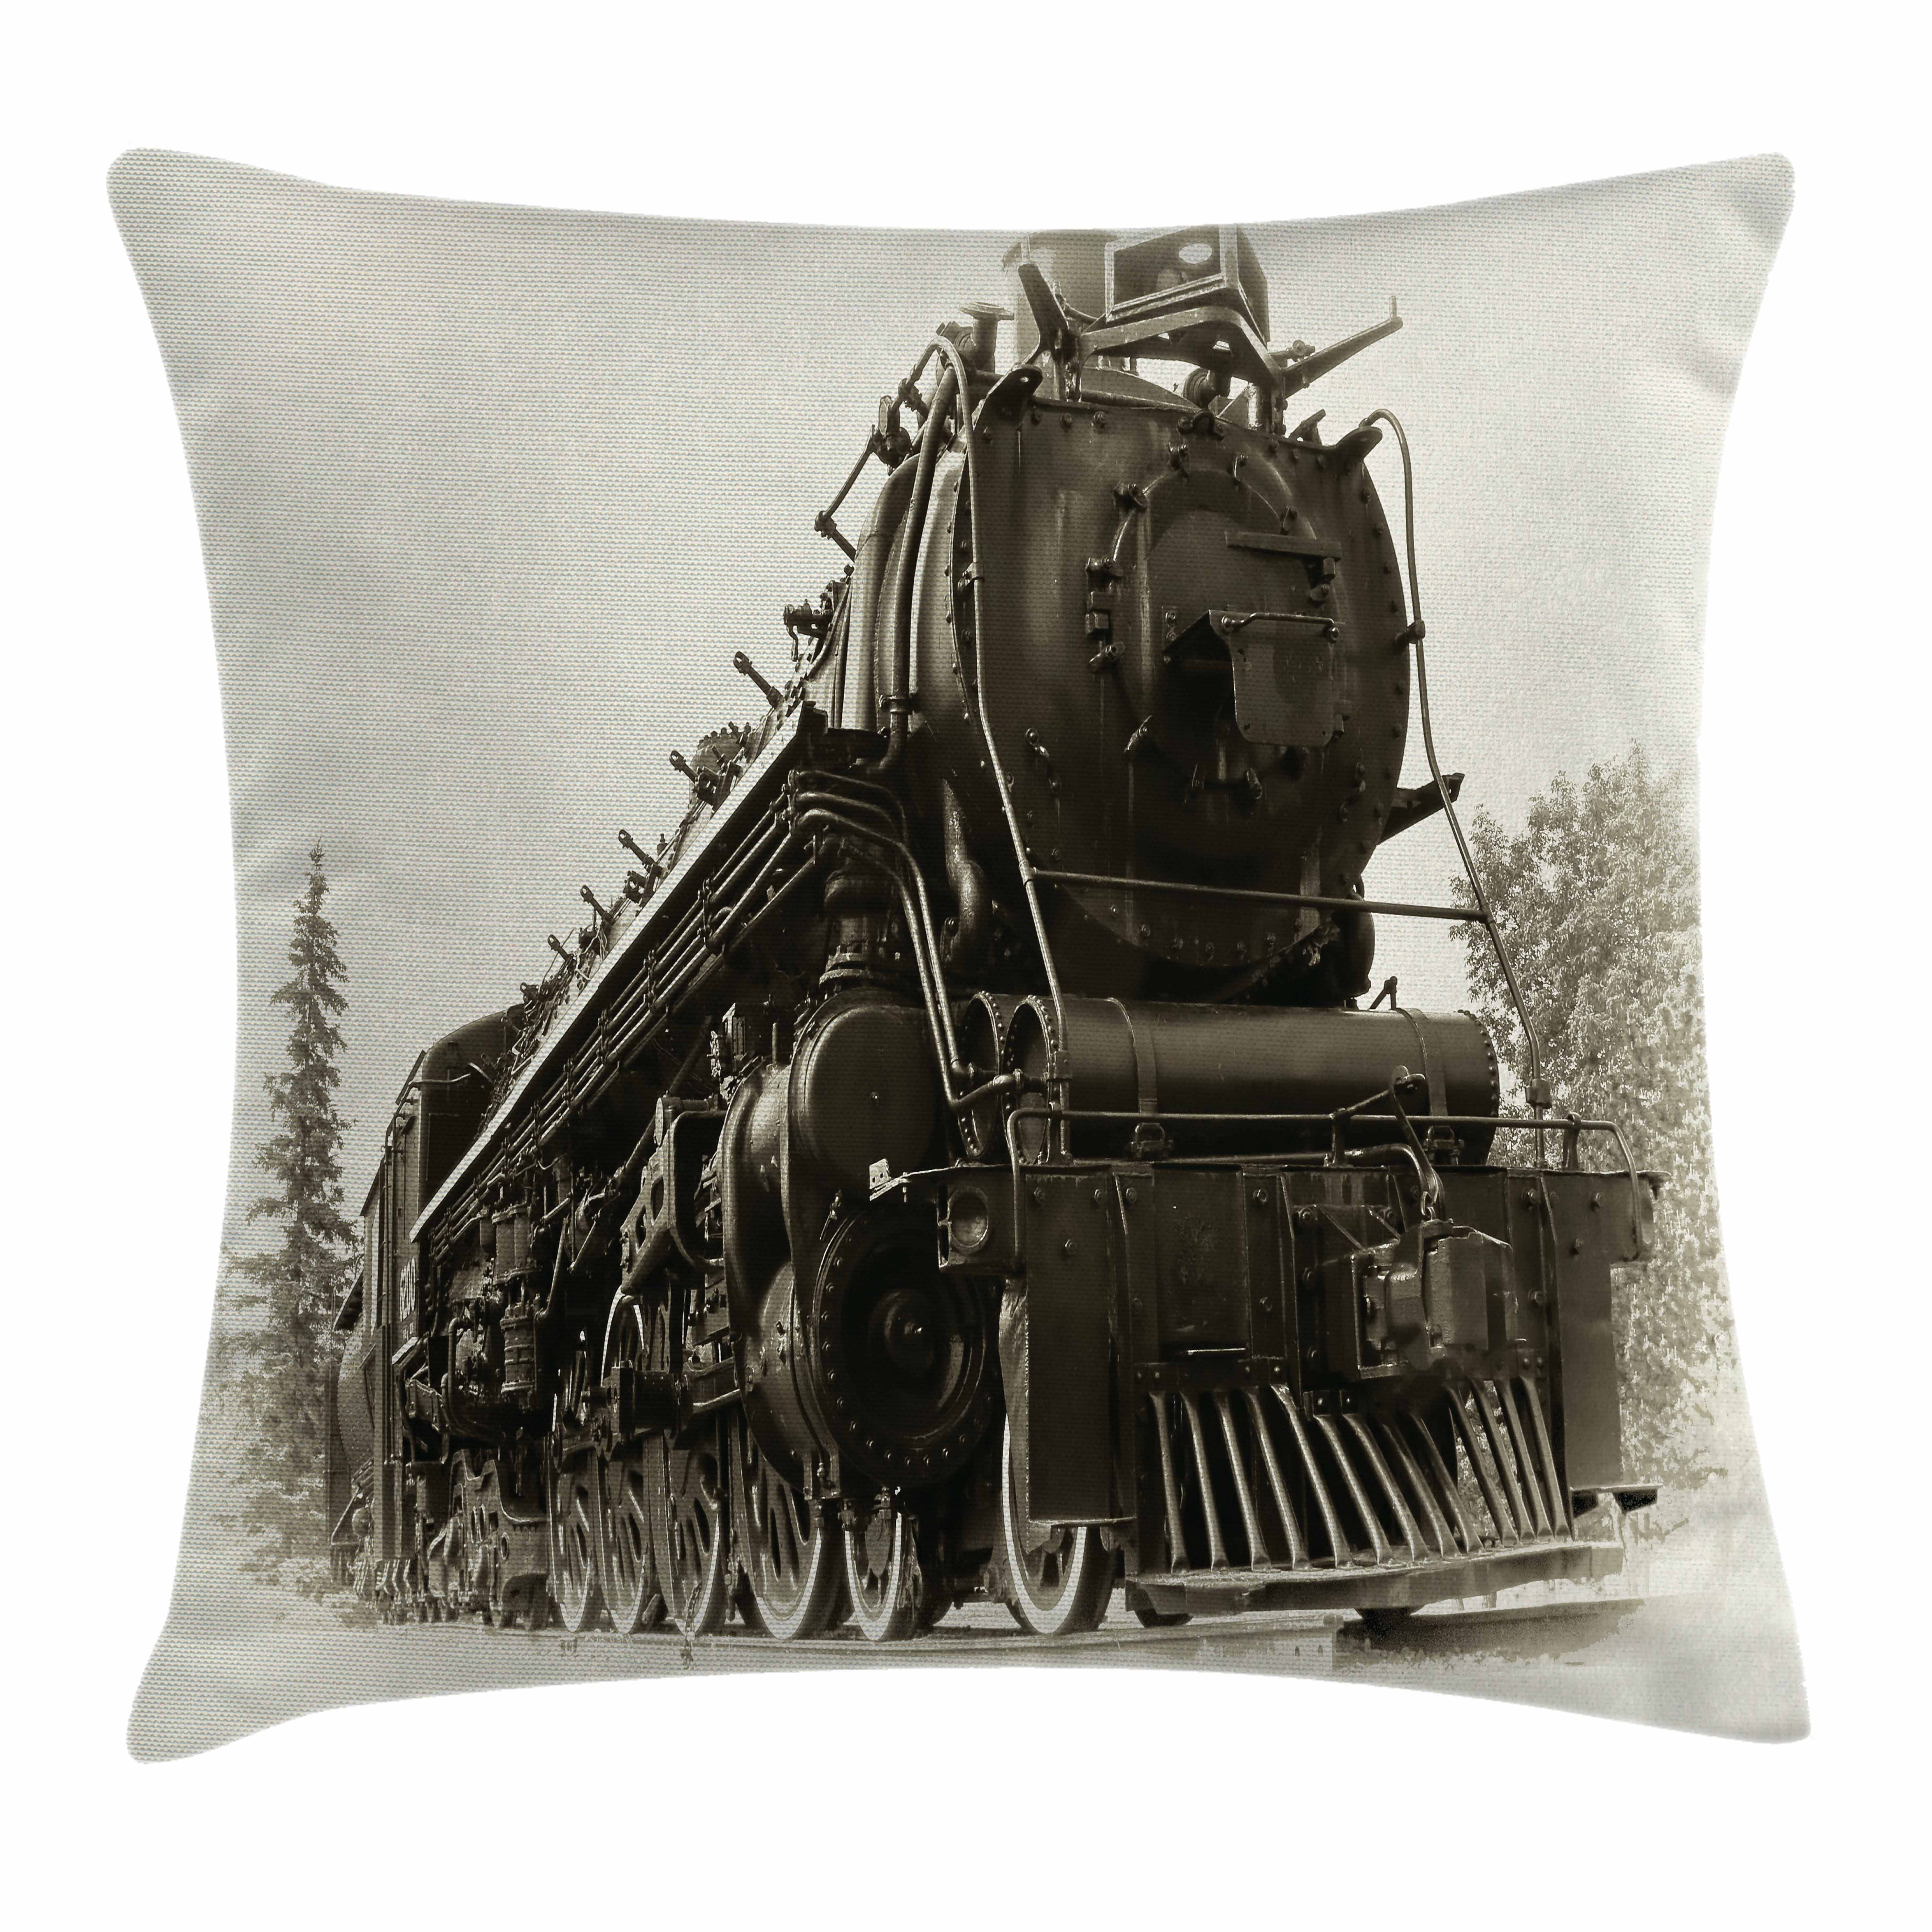 Steam Engine Throw Pillow Cushion Cover, Antique Northern Express Train Canada Railways Photo Freight Machine Print, Decorative Square Accent Pillow Case, 18 X 18 Inches, Black Grey, by Ambesonne